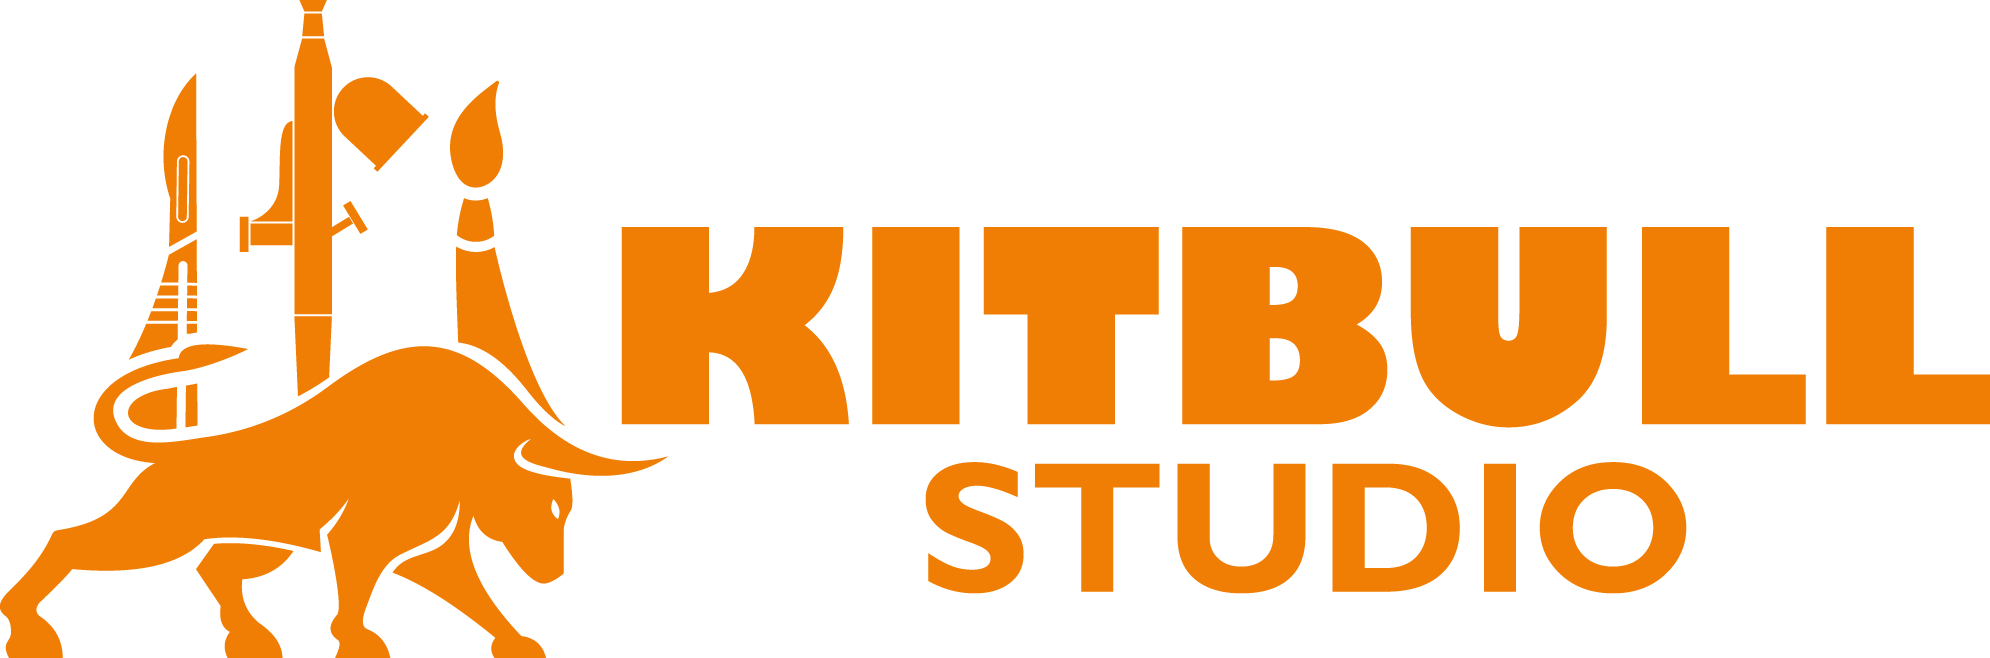 KitBull Studio | Garage Kits, Figures, Miniatures, Model Kits, 3D printing